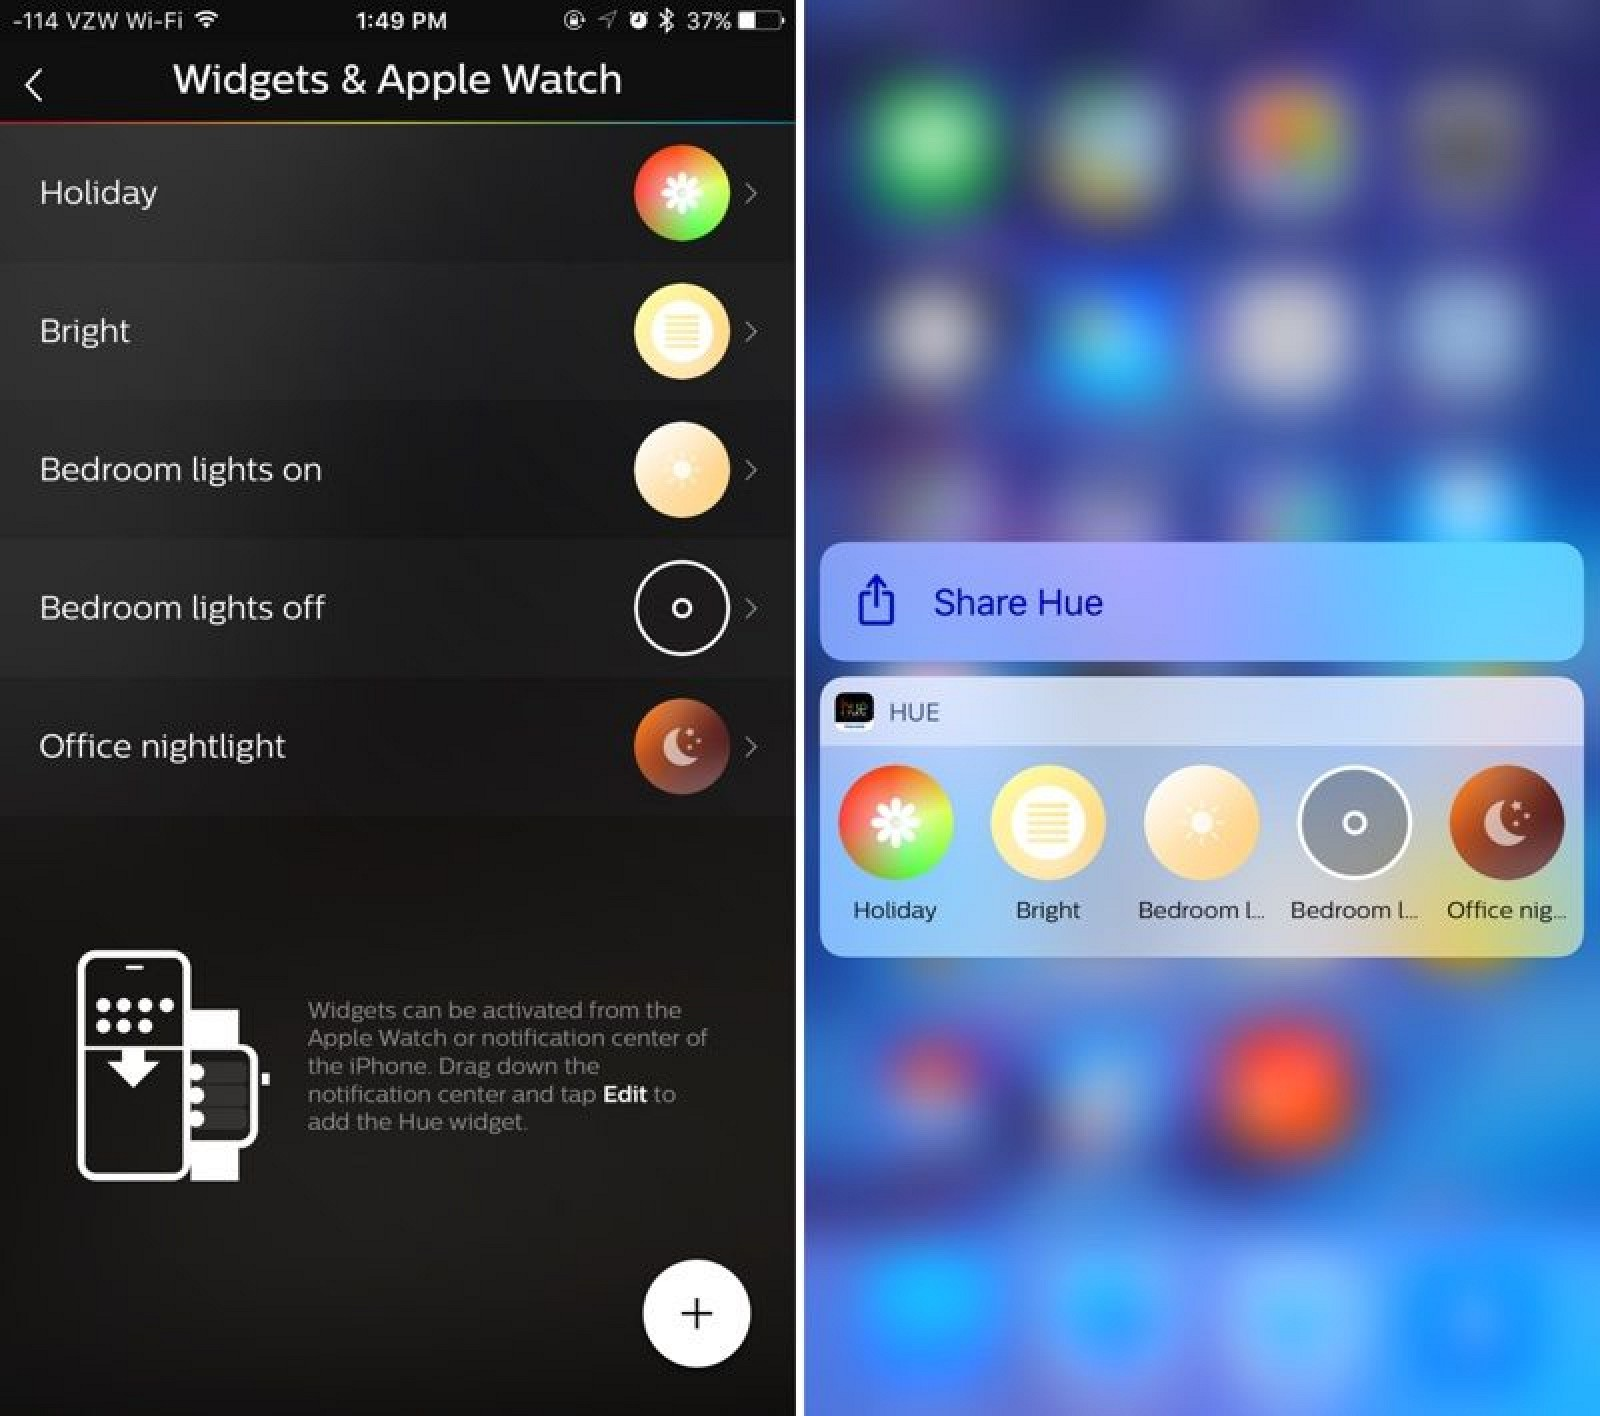 philips hue app expands to ipad gains new 3d touch features macrumors. Black Bedroom Furniture Sets. Home Design Ideas